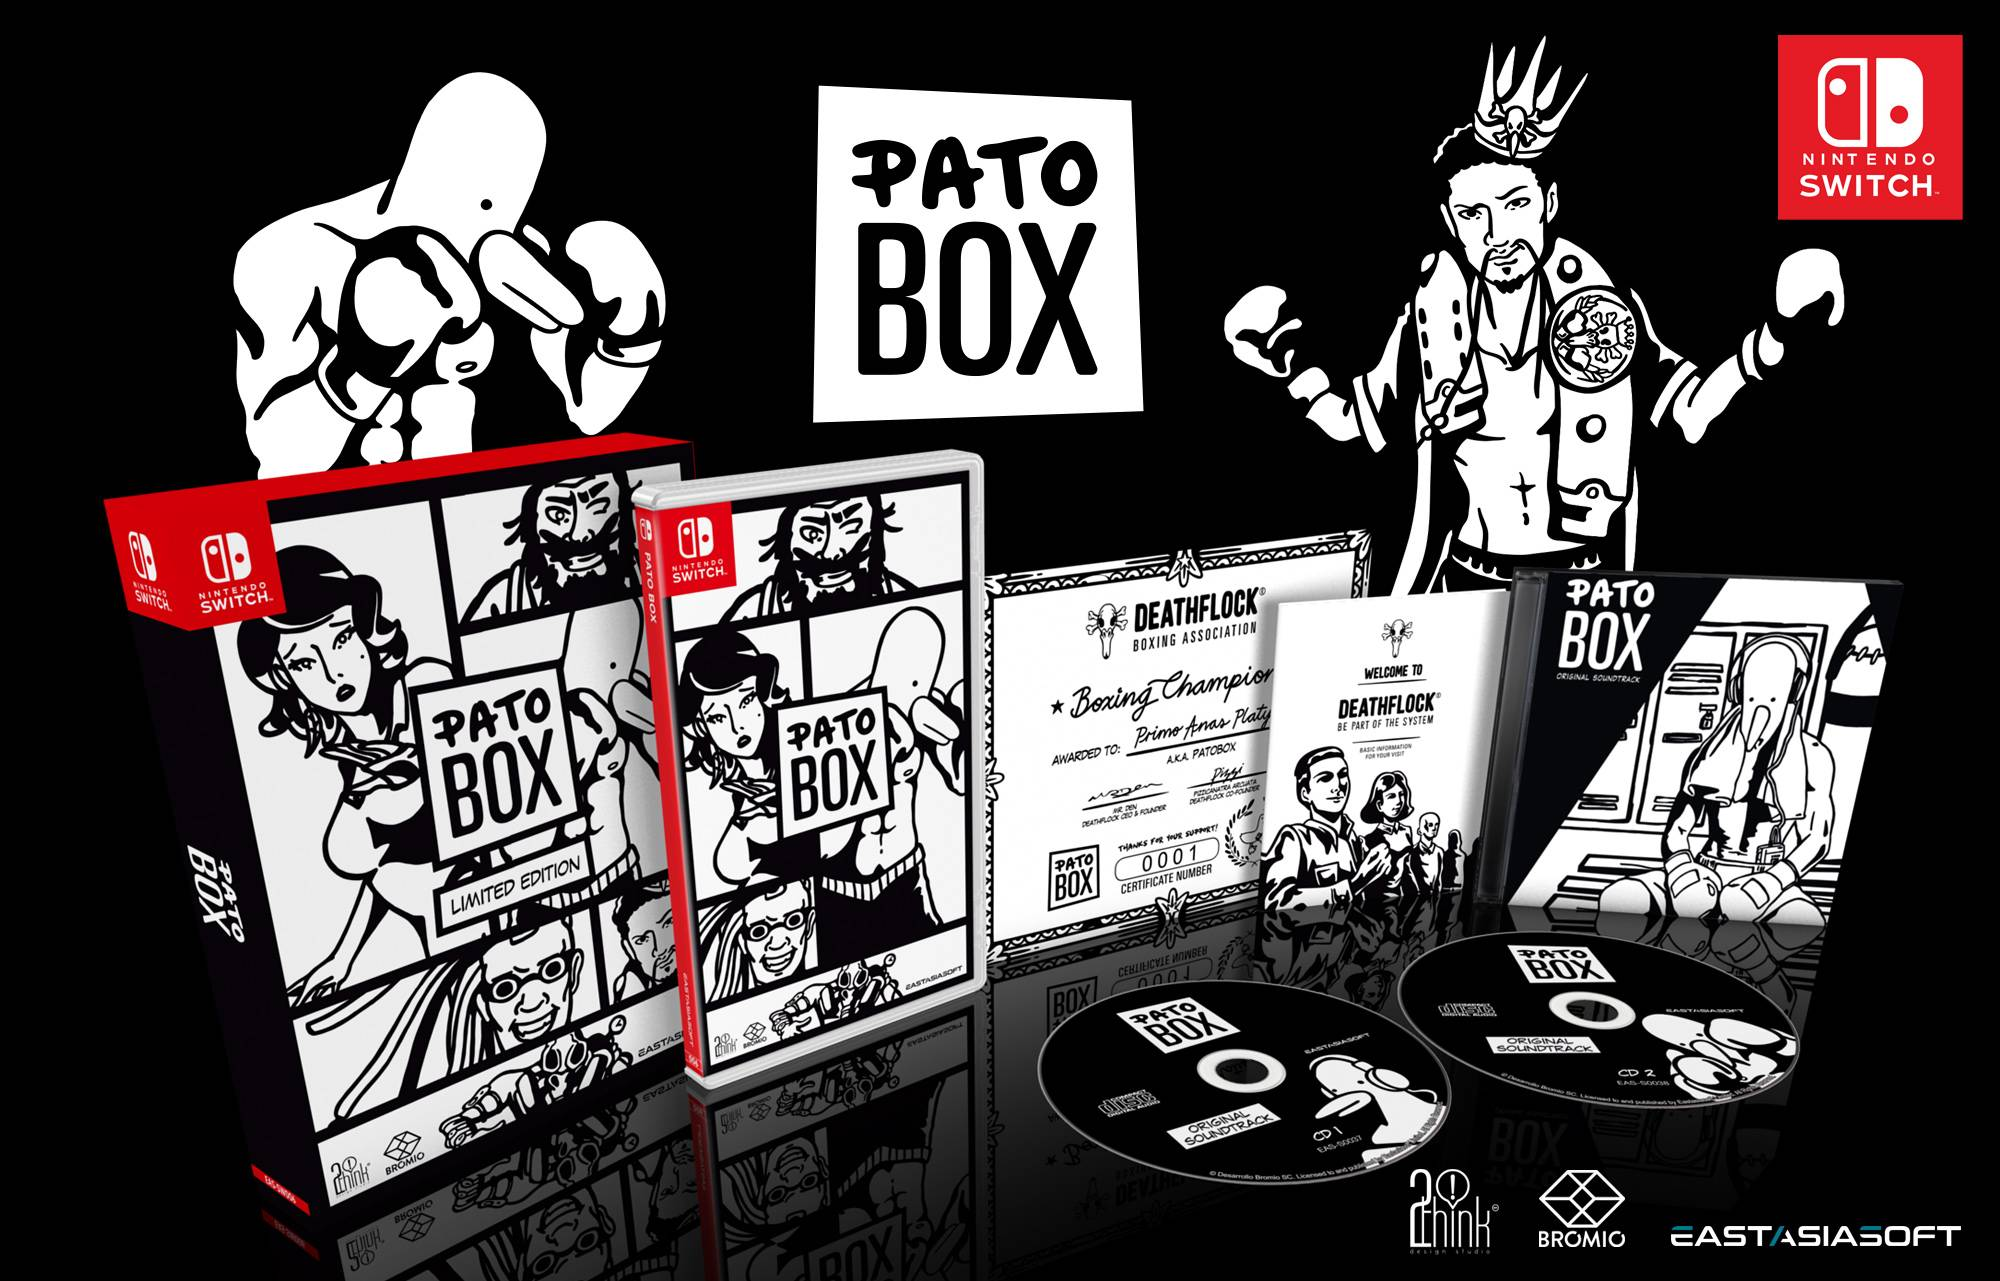 Pato Box Nintendo Switch Limited Edition